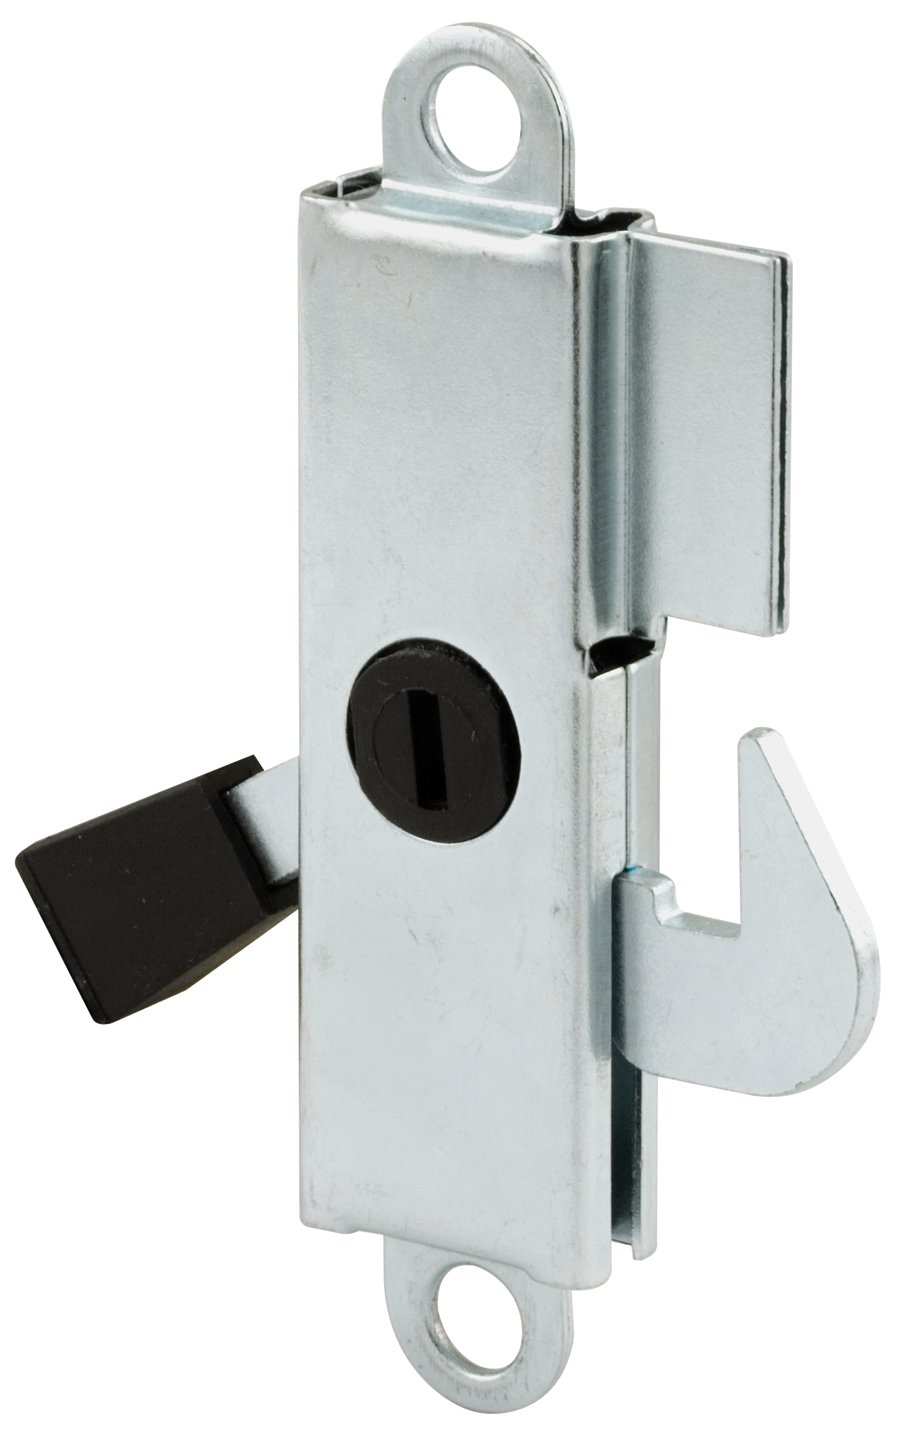 Prime Line Products E 2105 Sliding Door Internal Lock Aluminum With